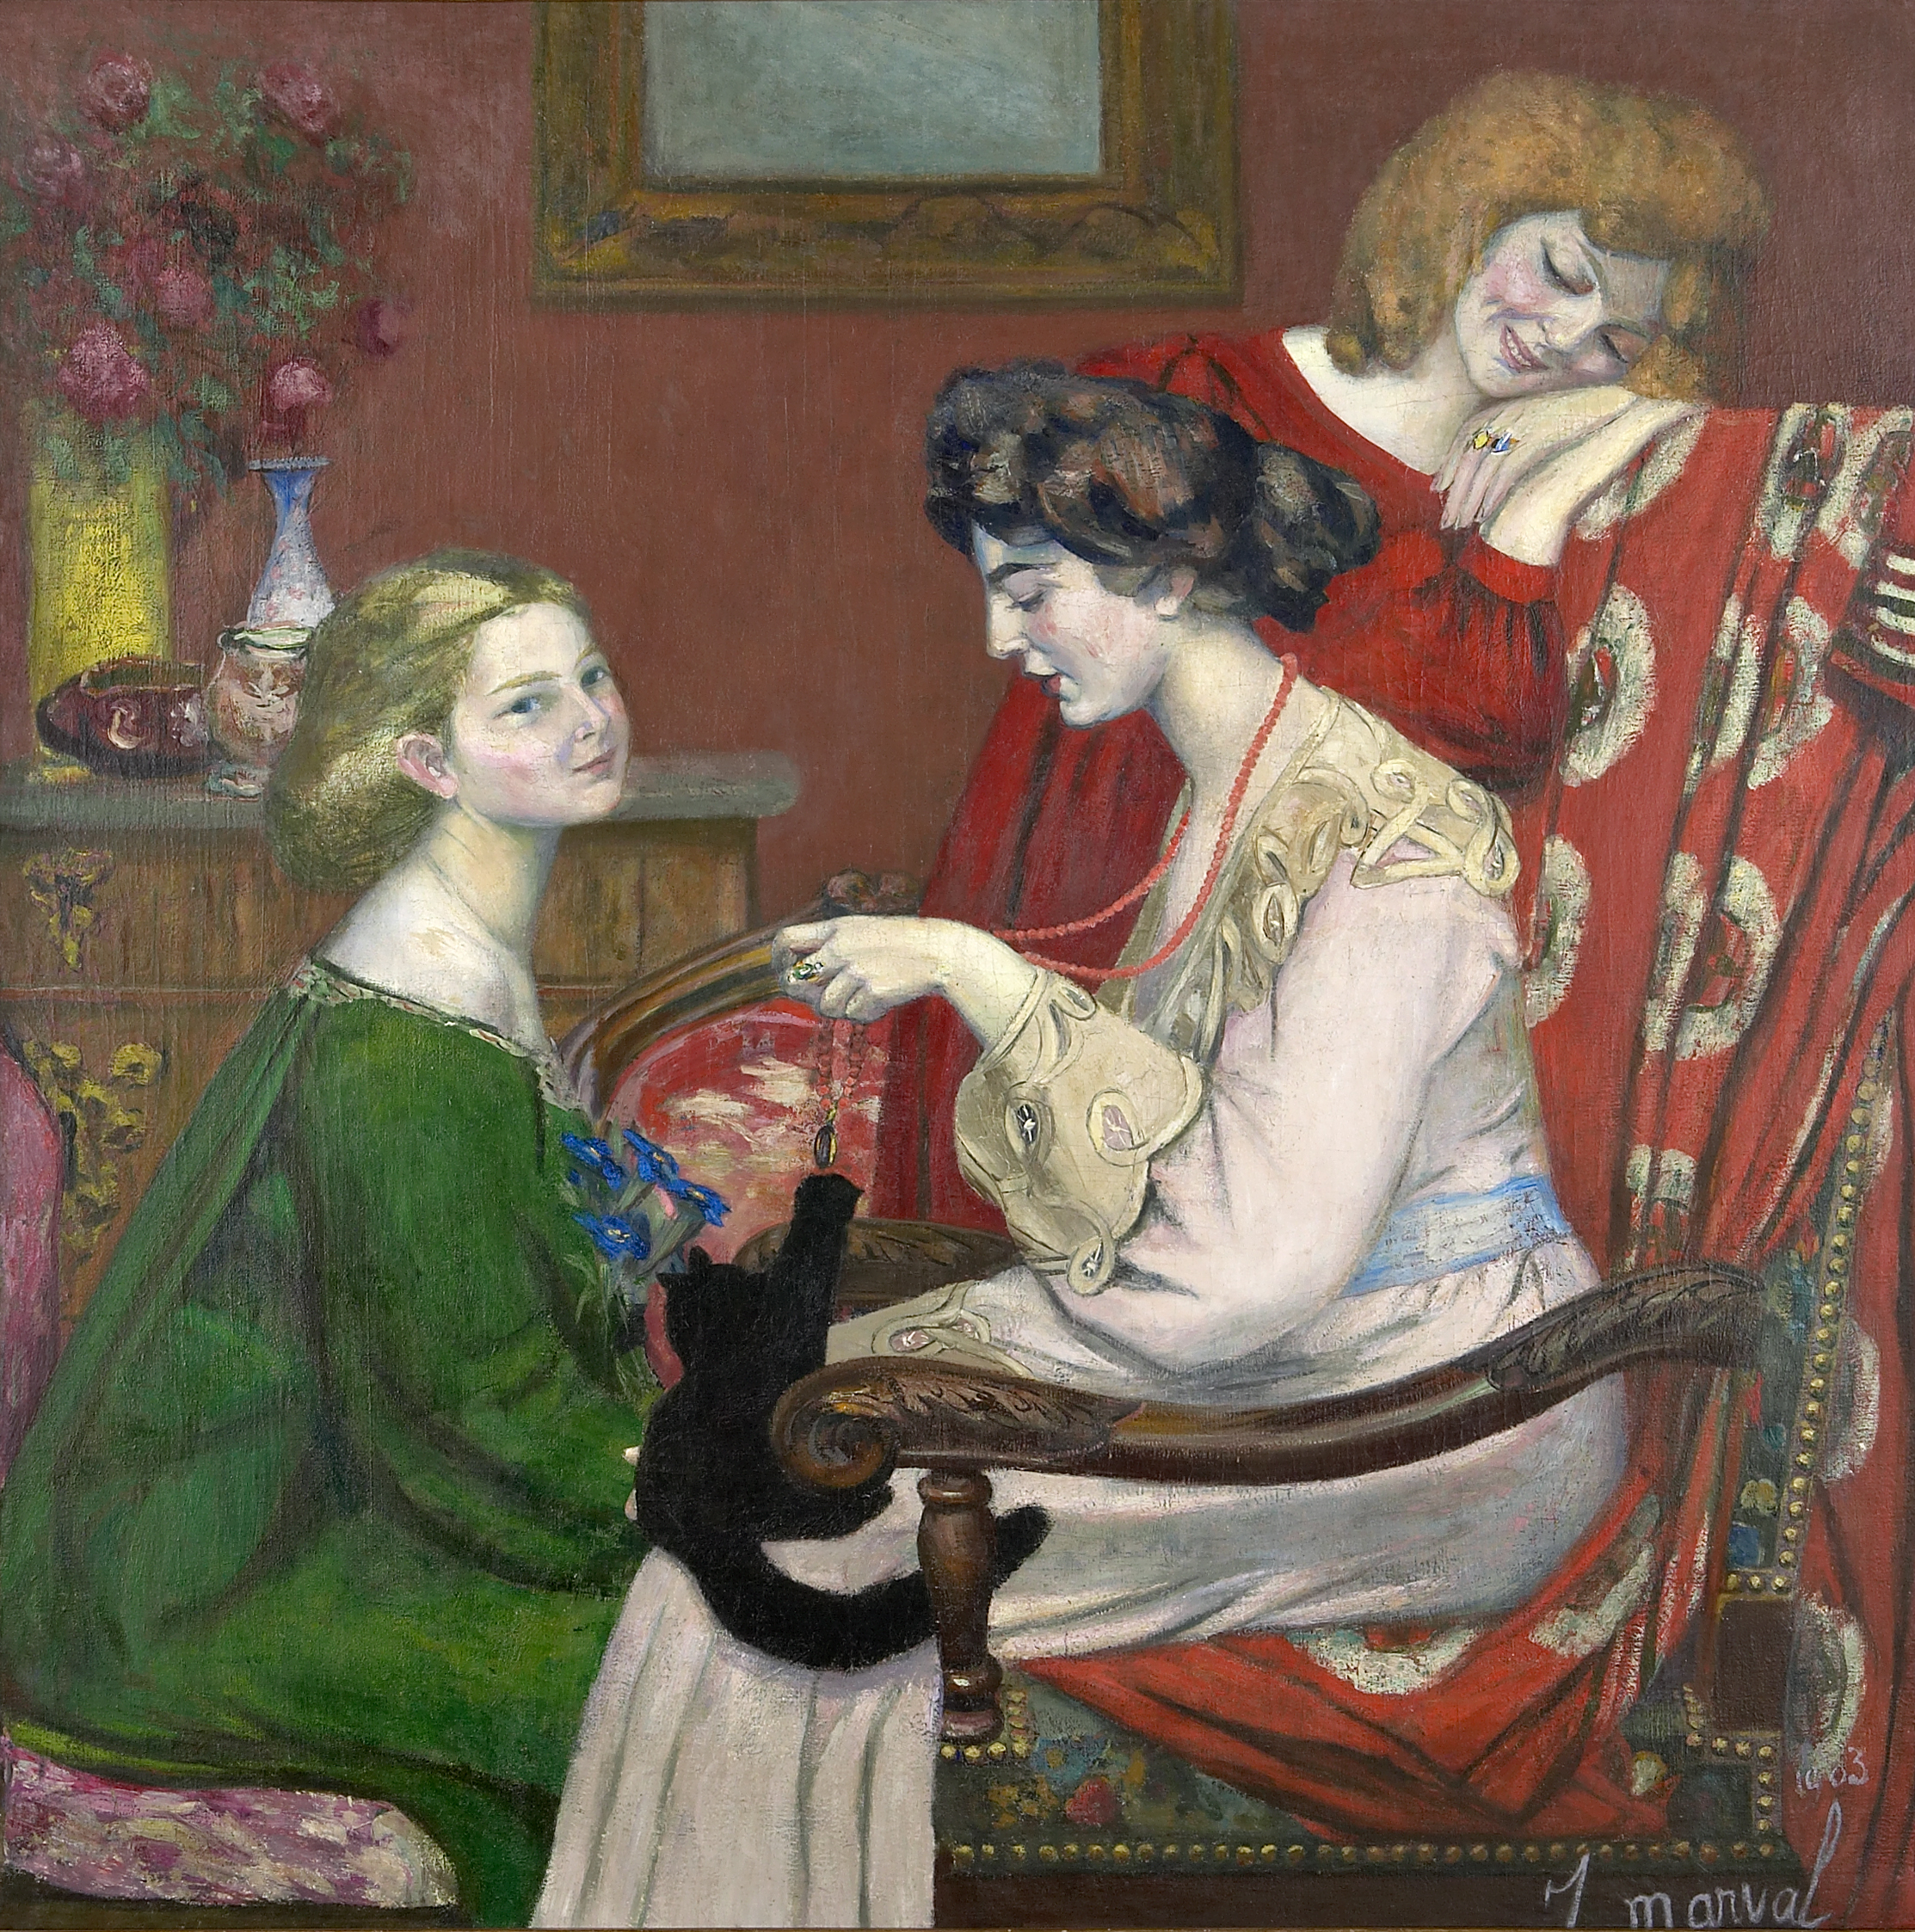 Les Coquettes, Jacqueline Marval, 1903. Former Ambroise Vollard collection.